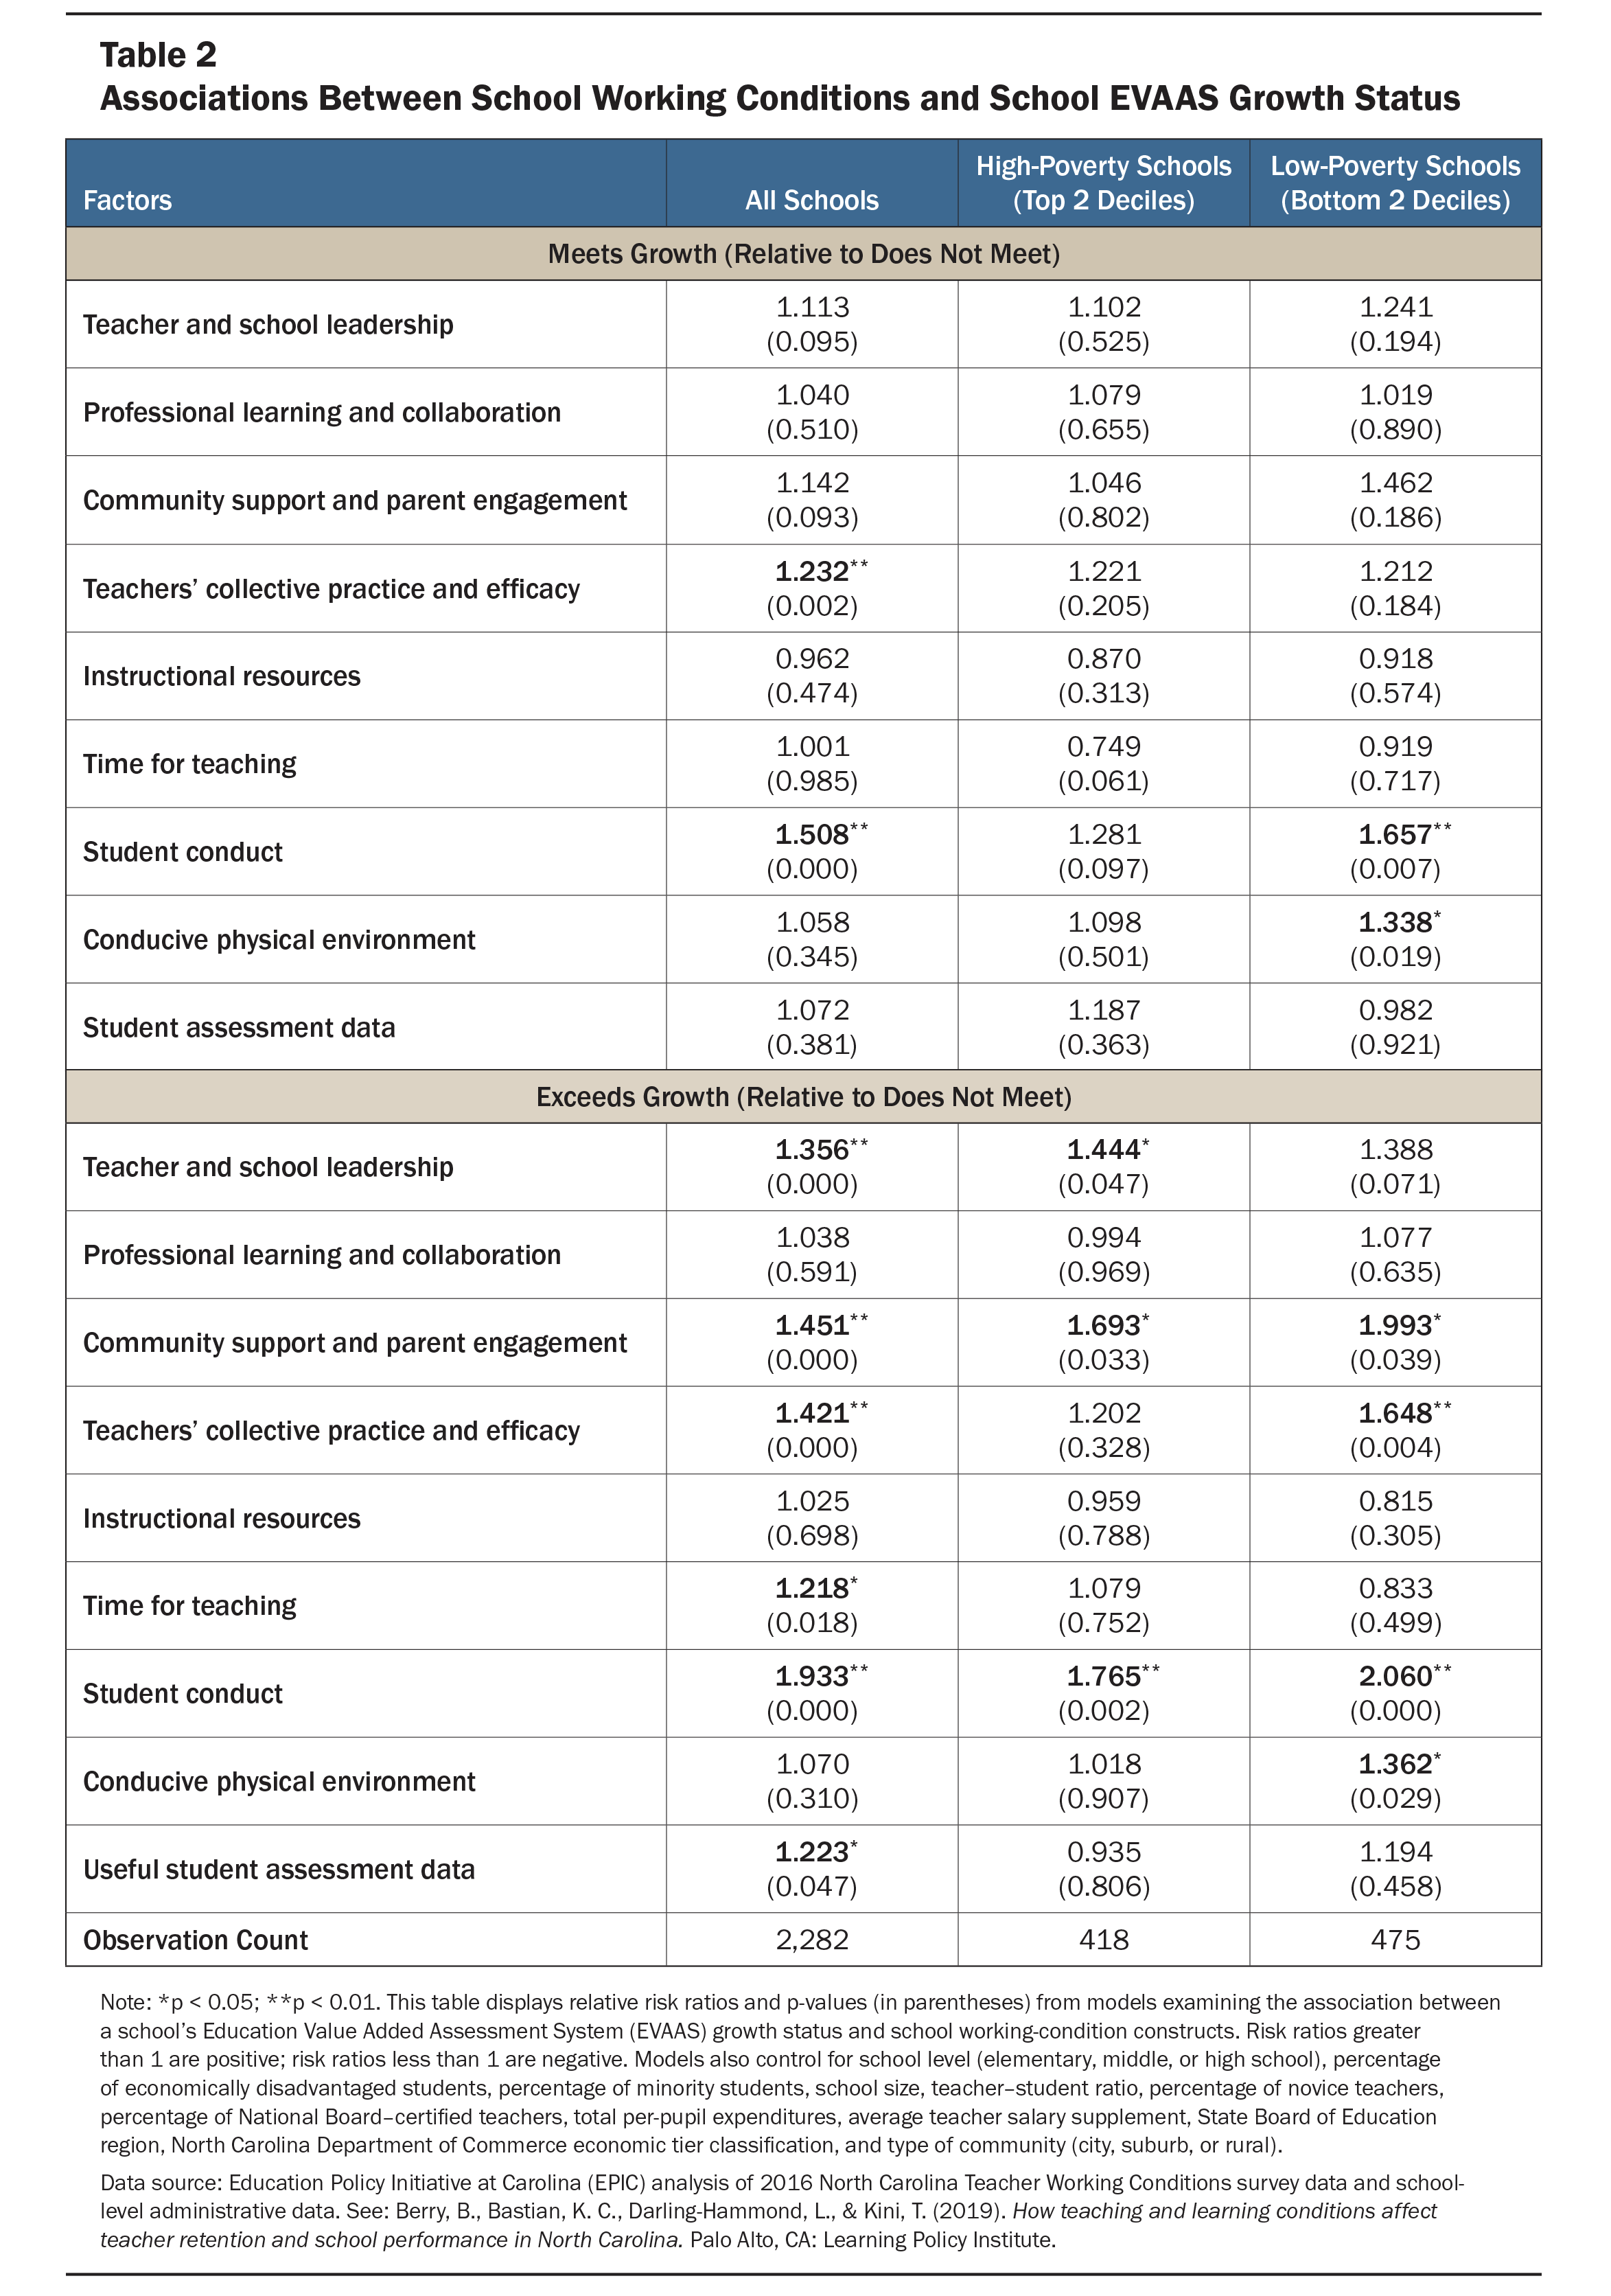 Table listing the associations between school working conditions and school EVAAS Growth Statuses of Growth Meets and Growth Exceeds